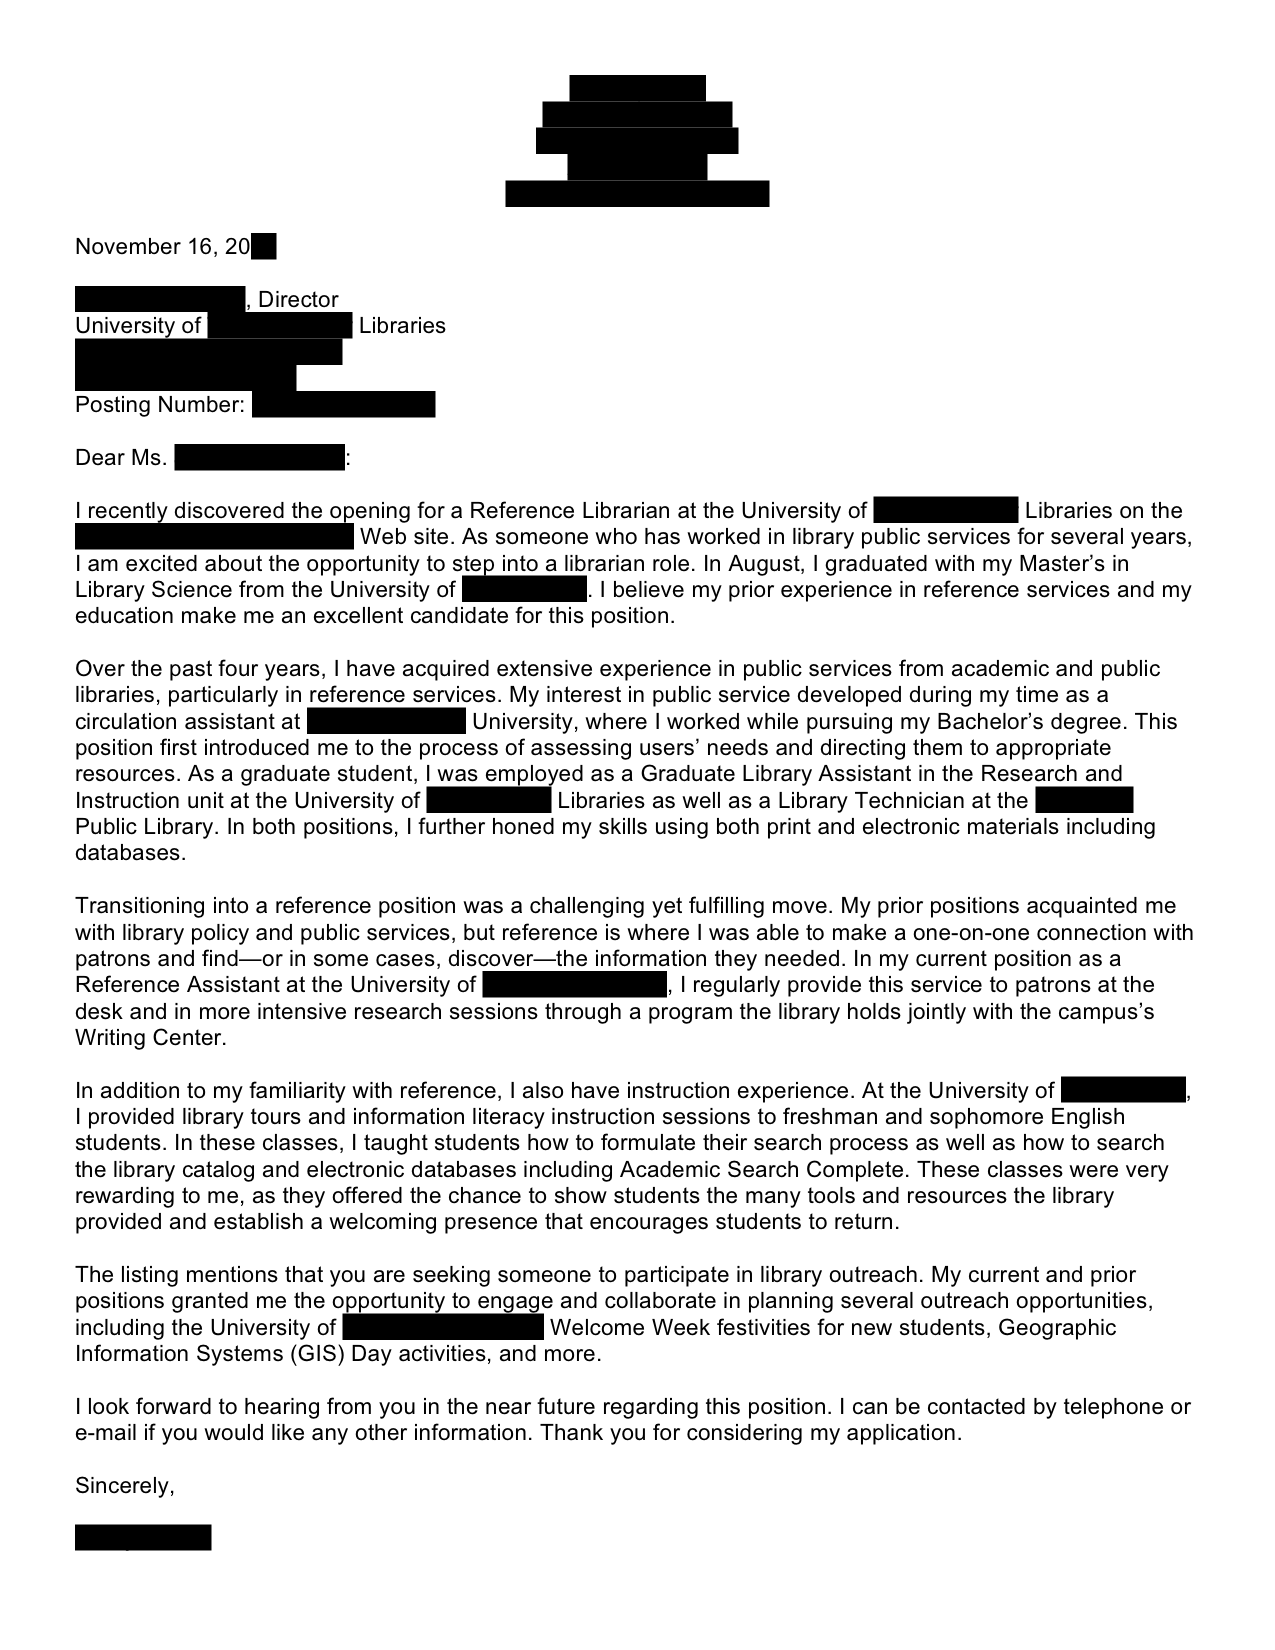 Reference Librarian Cover Letter for Resume